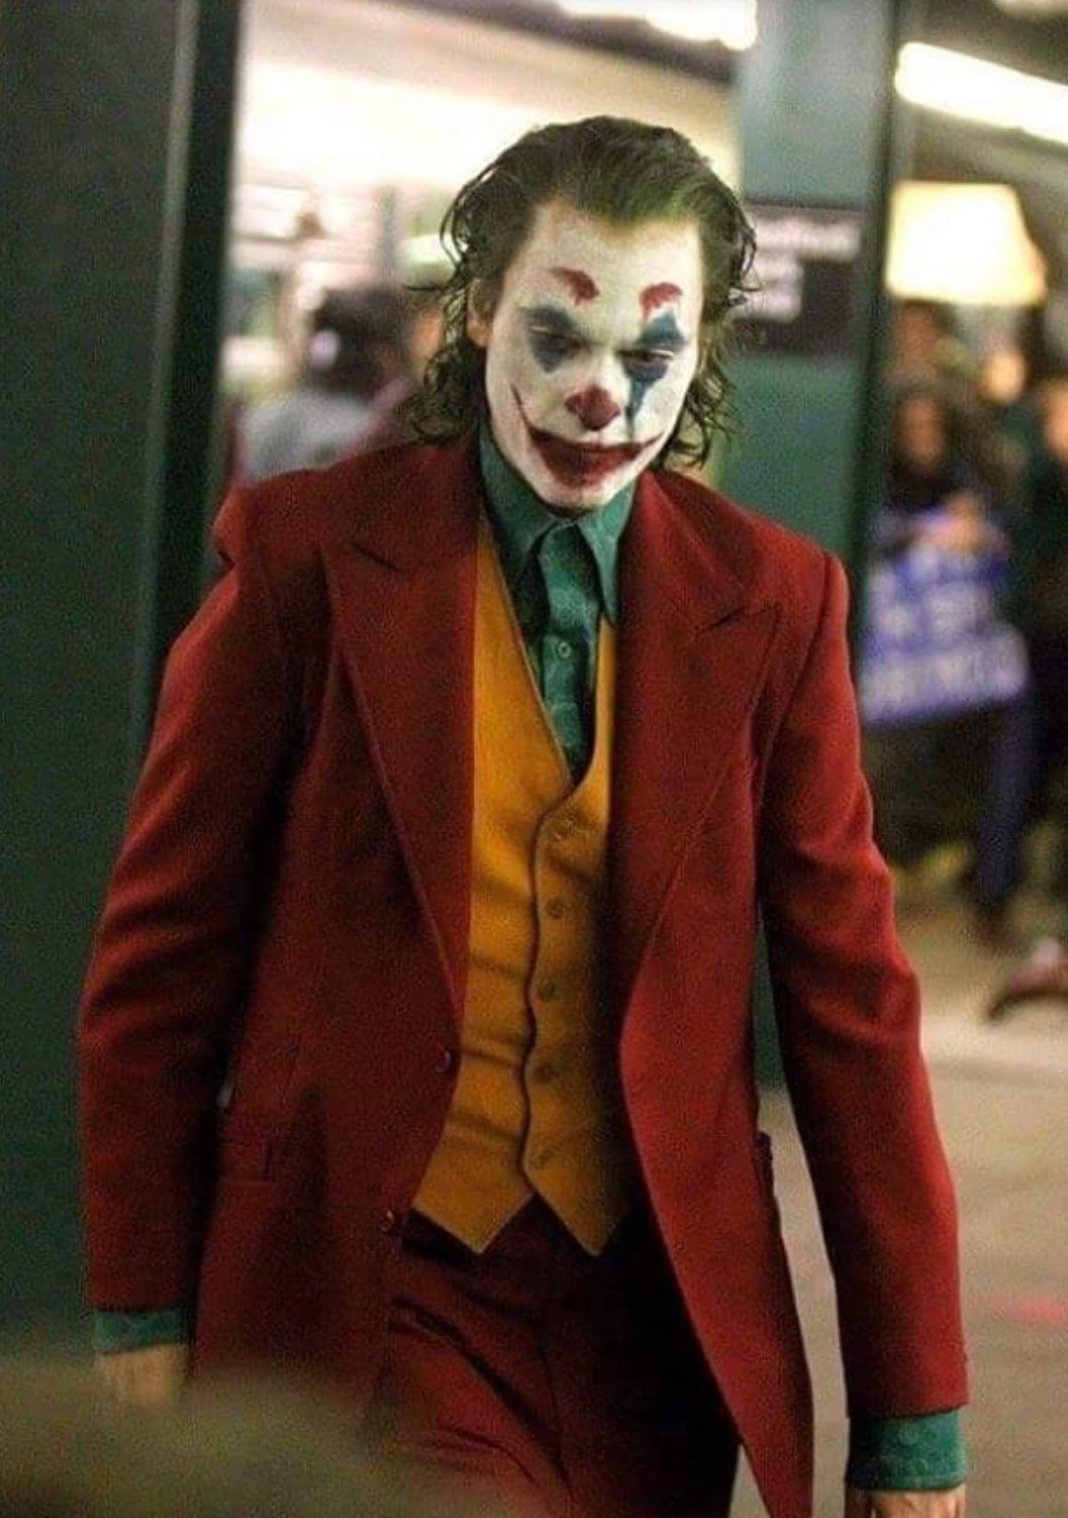 Joker 2019 Wallpapers High Quality Download Free